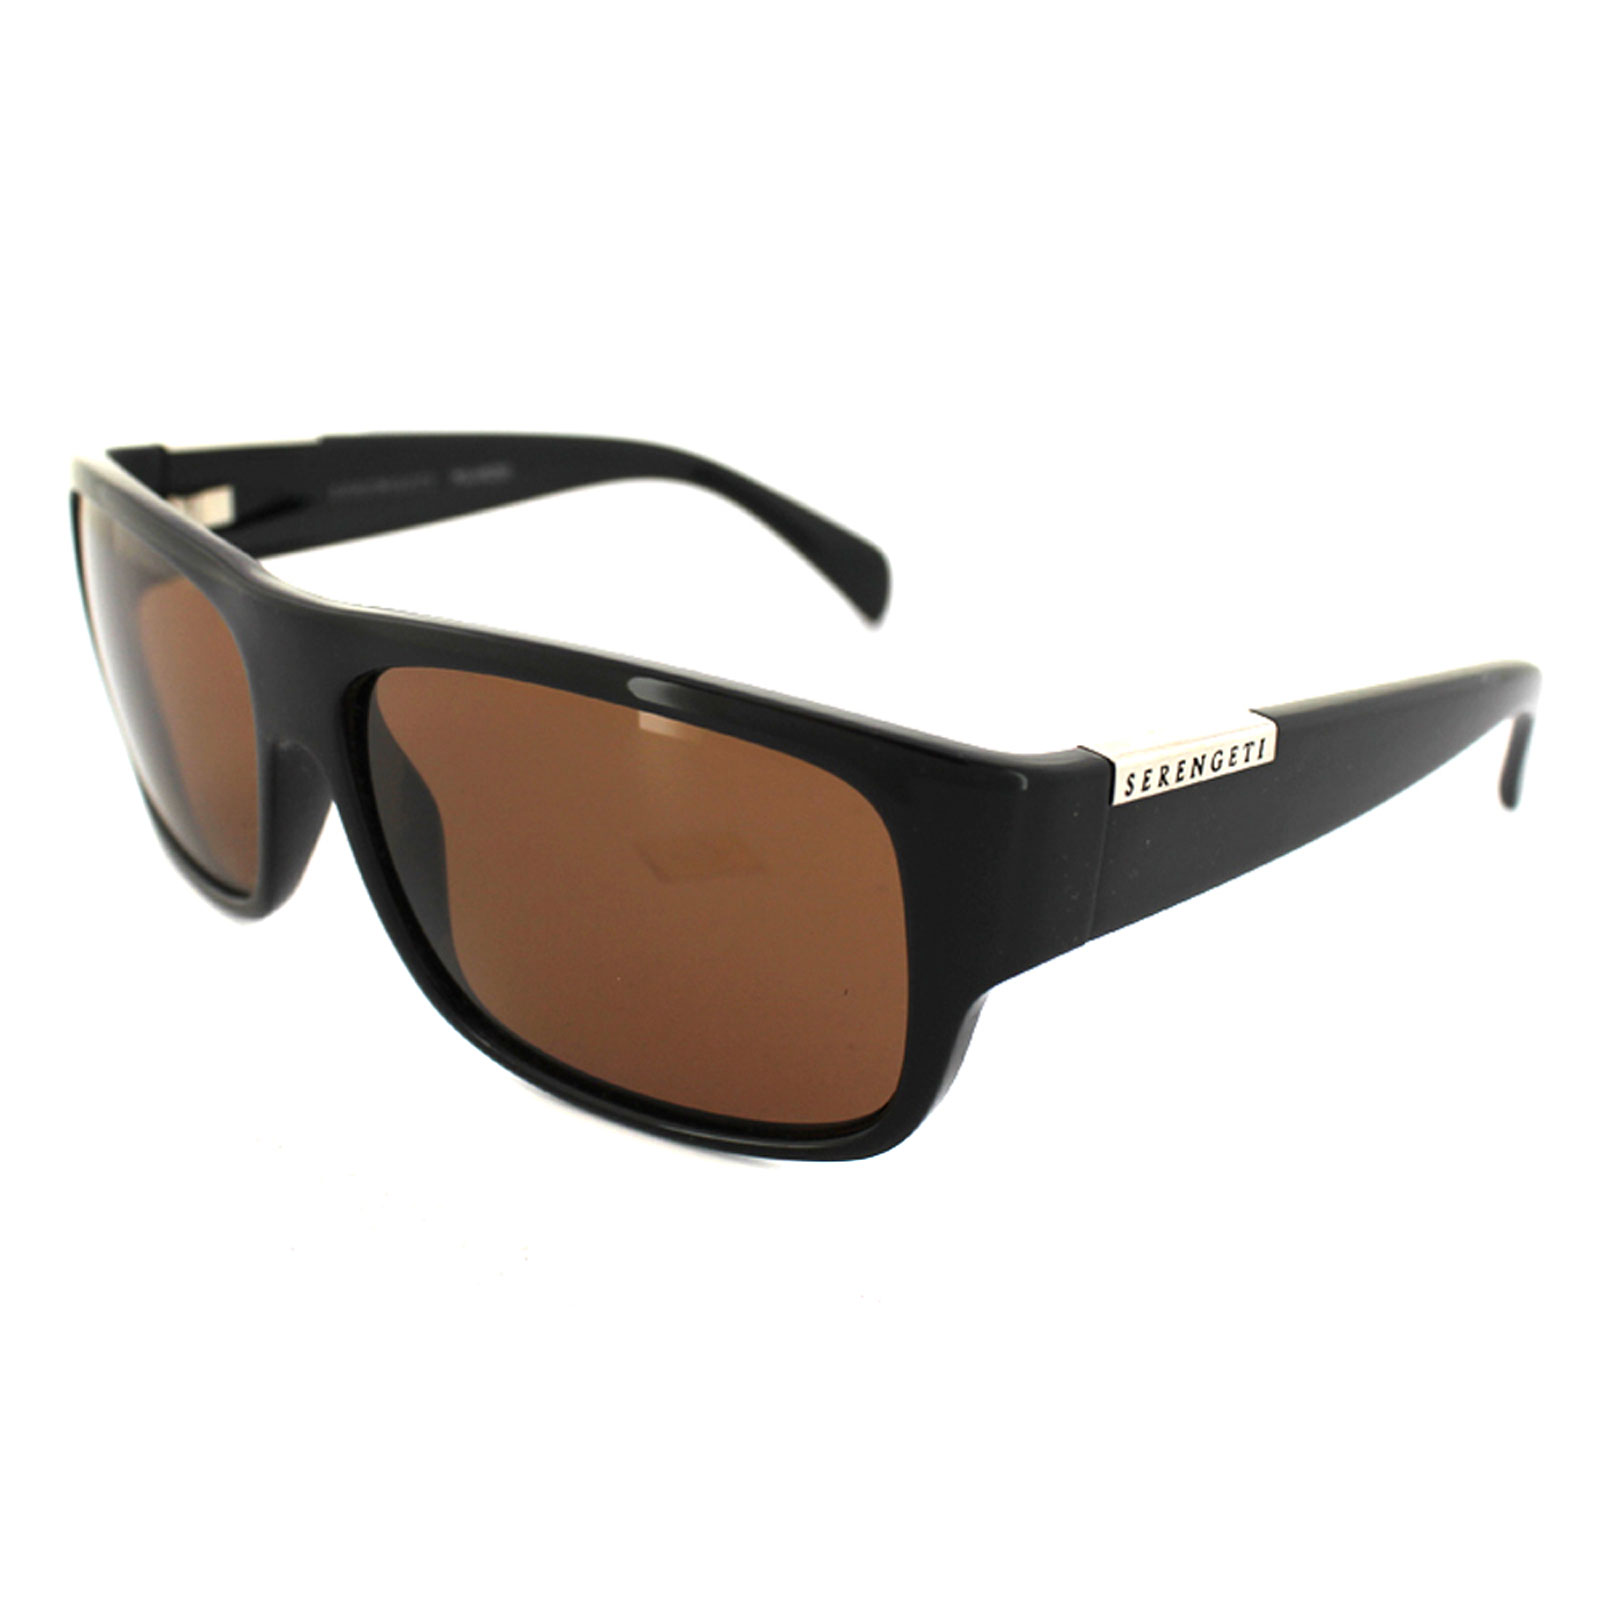 105c4c232f8 Serengeti Sunglasses Drivers Reviews